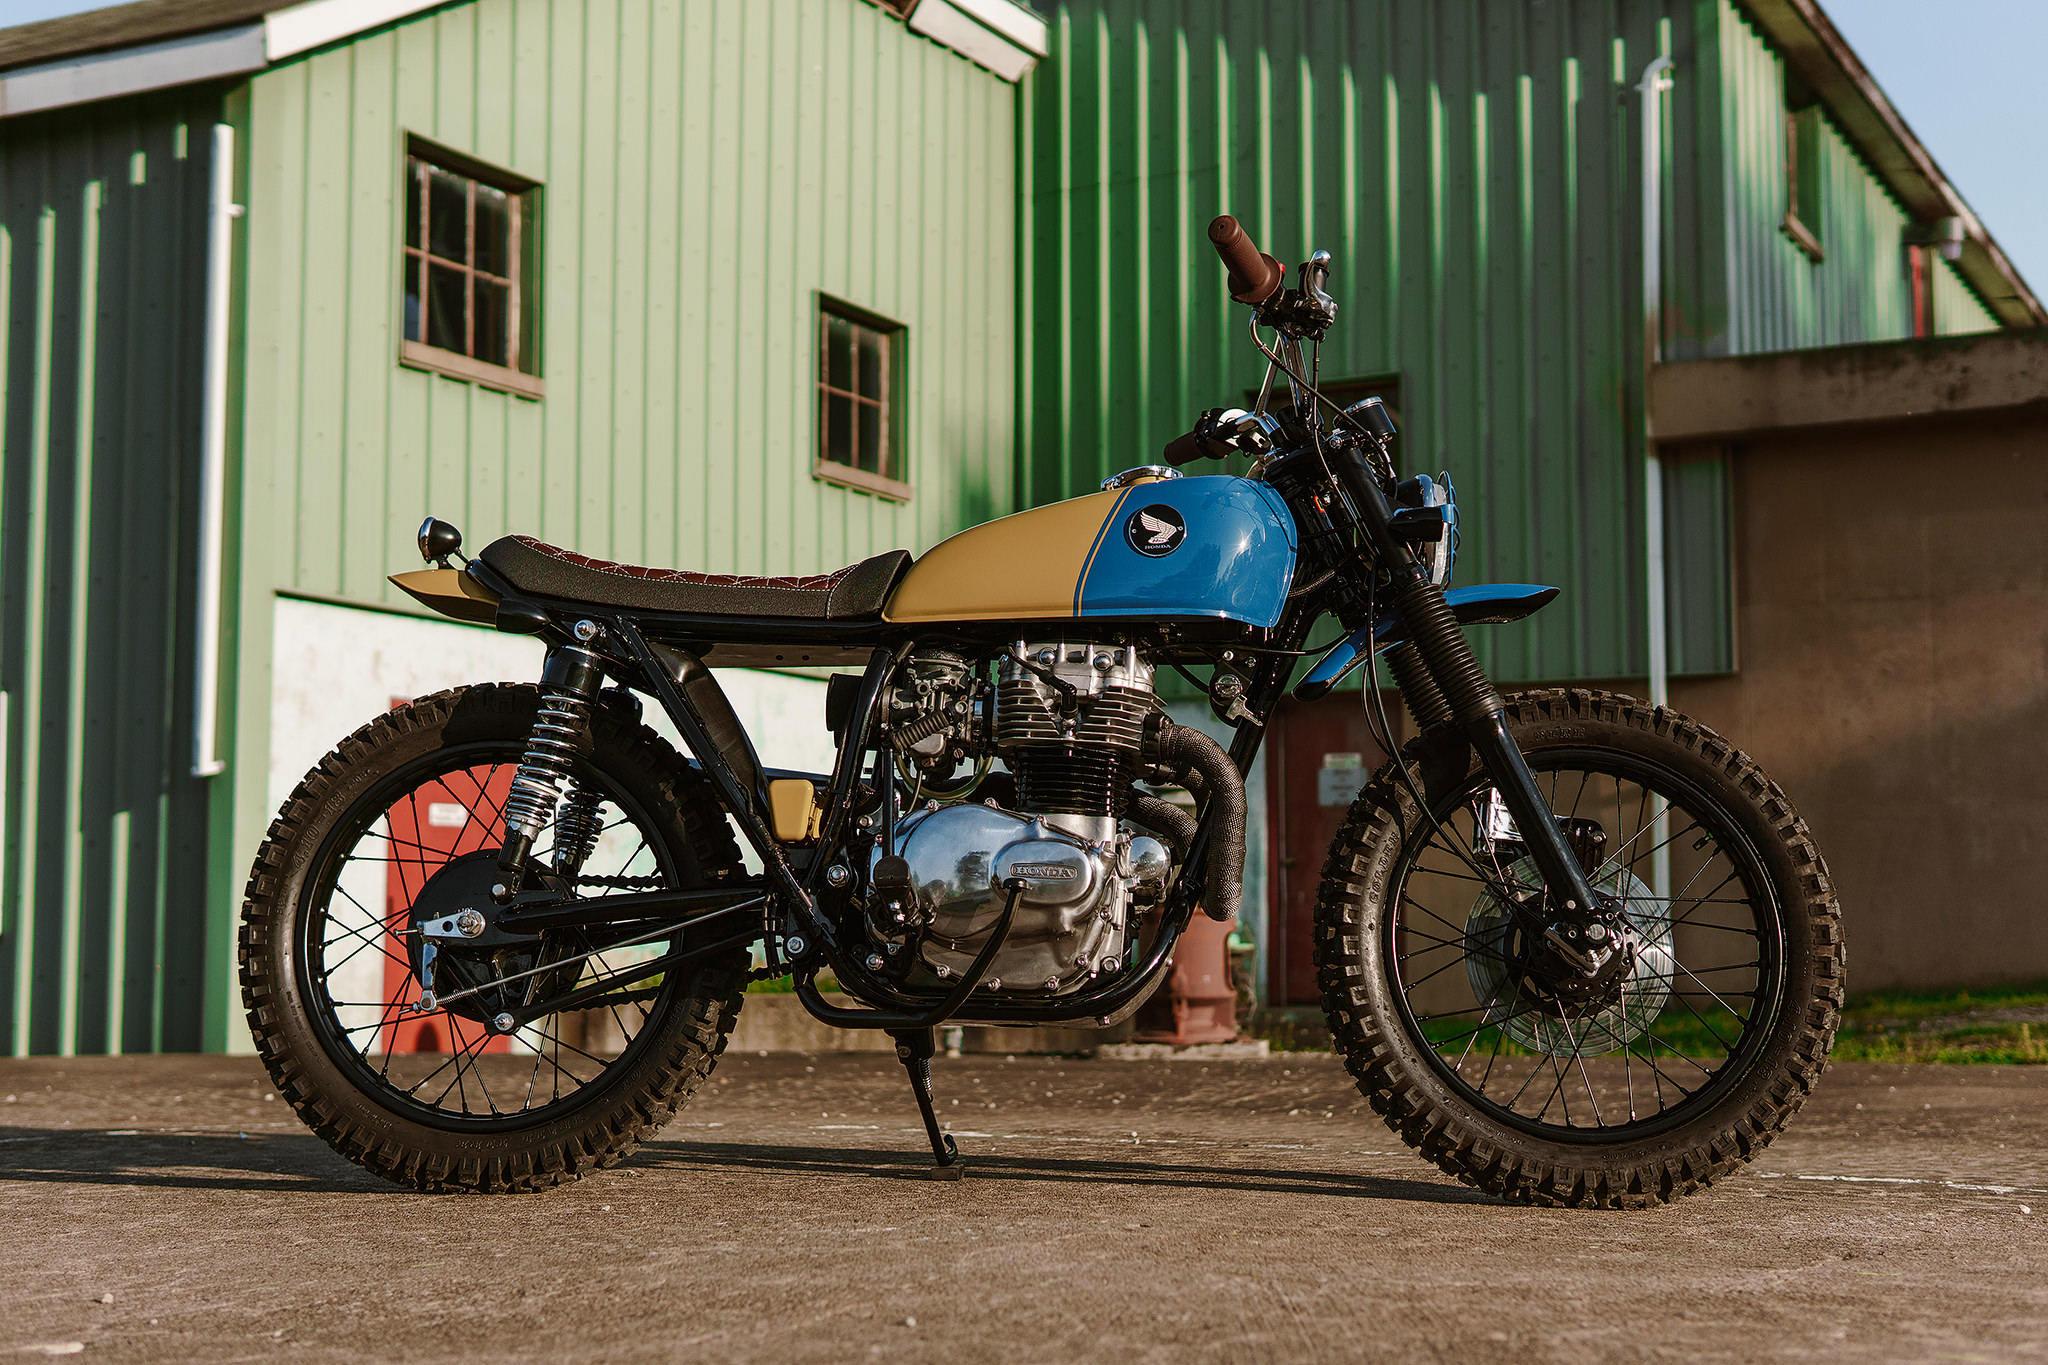 BJ Scrambler, Outdoor - 11.jpg